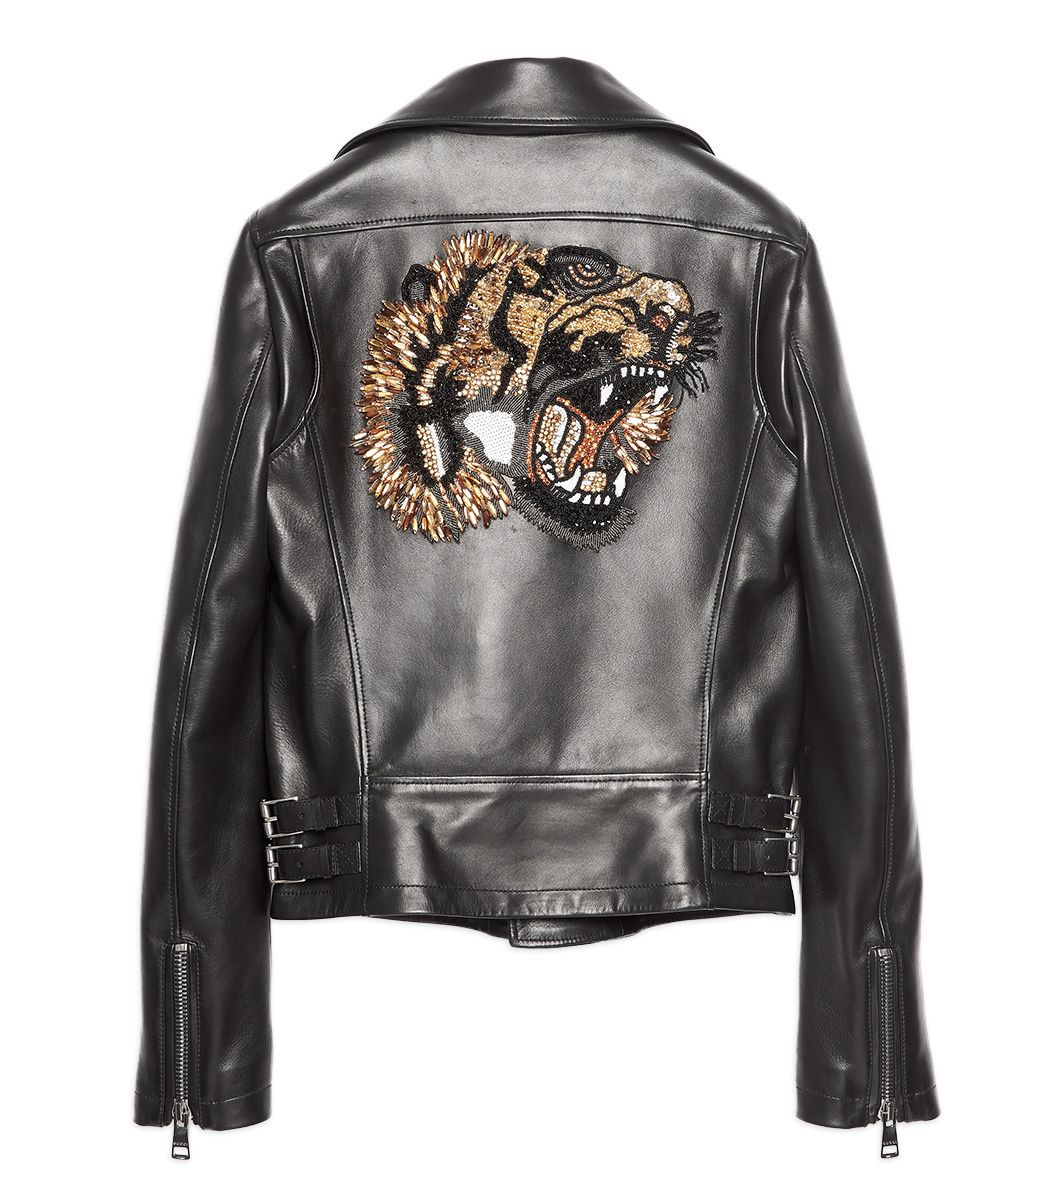 GUCCI Black 'Tiger' Leather Jacket Moto styled featuring